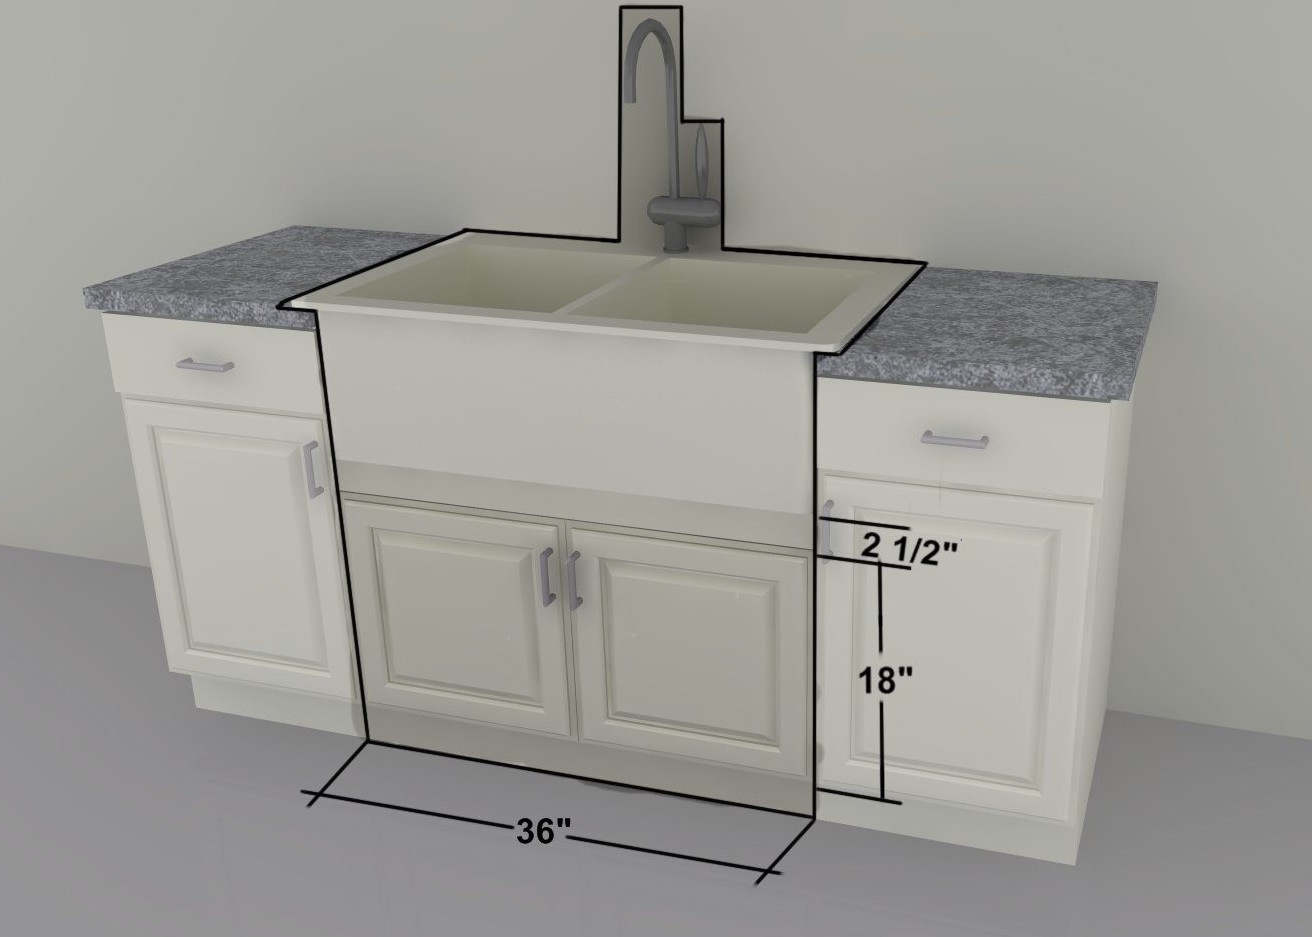 ikea custom cabinets 36 farm sink or gas cooktop units kitchen sink cabinets IKEA custom cabinets 36 farm sink or gas cooktop units